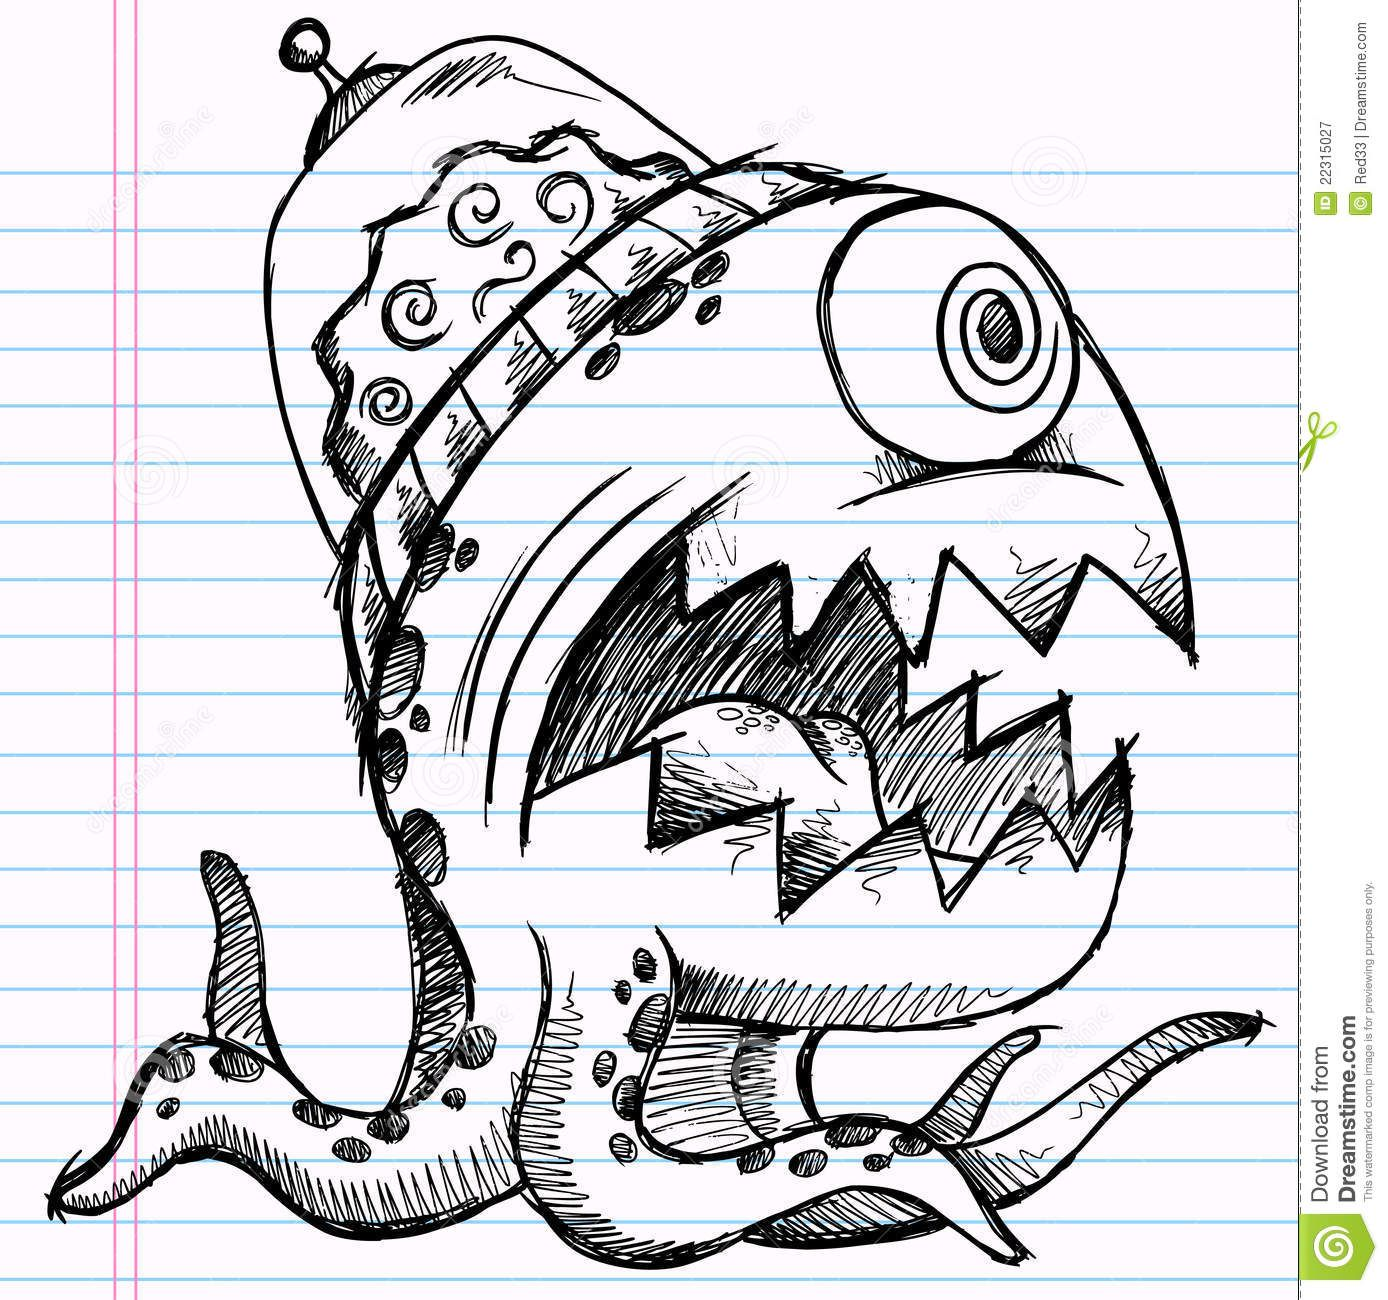 Scribble Monster Drawing : How to draw simple graffiti art google search random